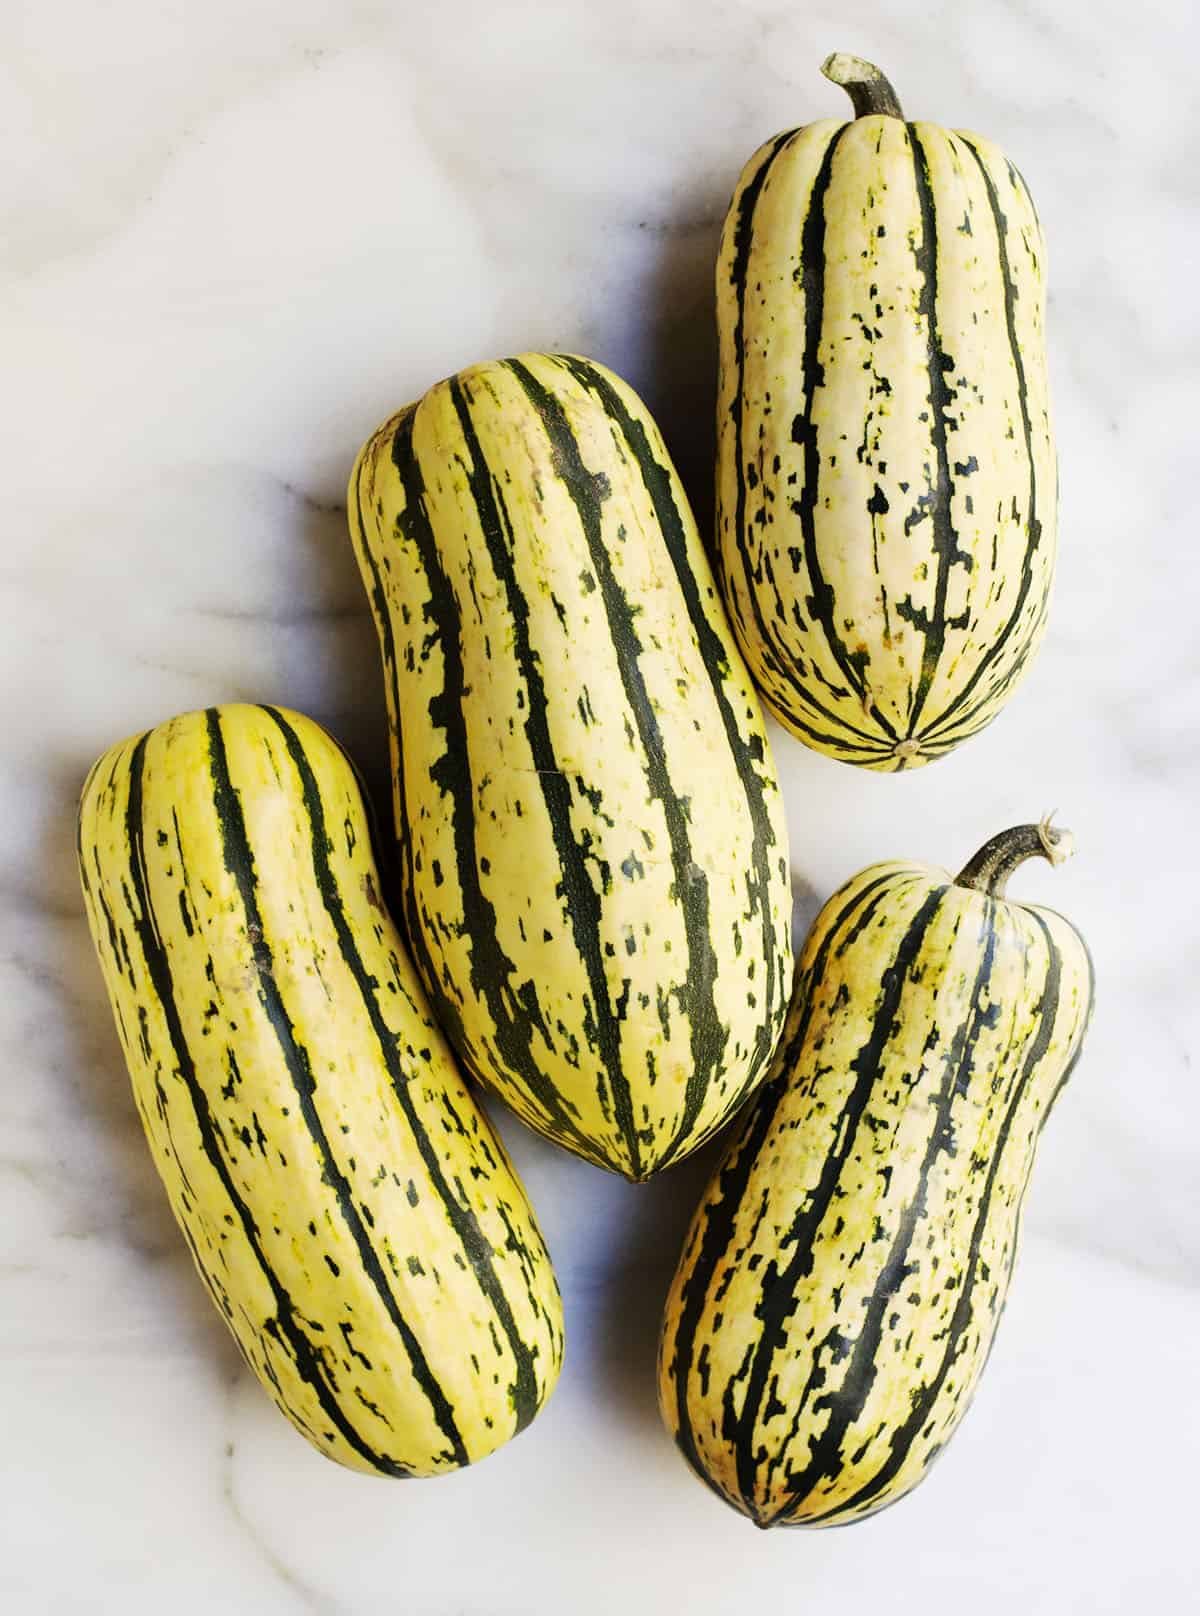 Four Delicata Squashes photographed from above